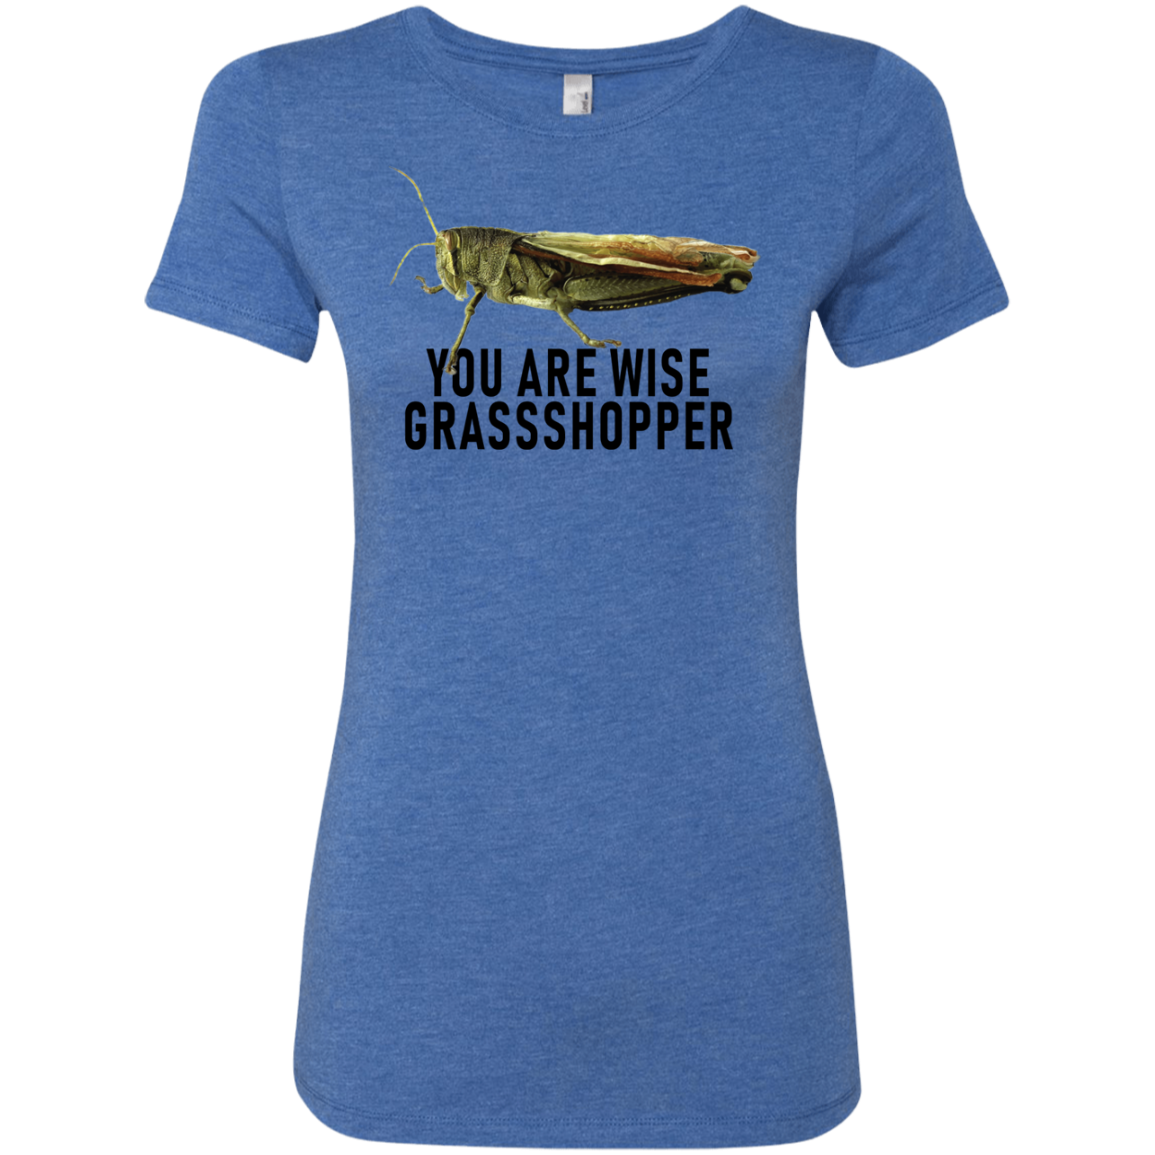 You Are Wise Grassshopper Women's Classic Tee